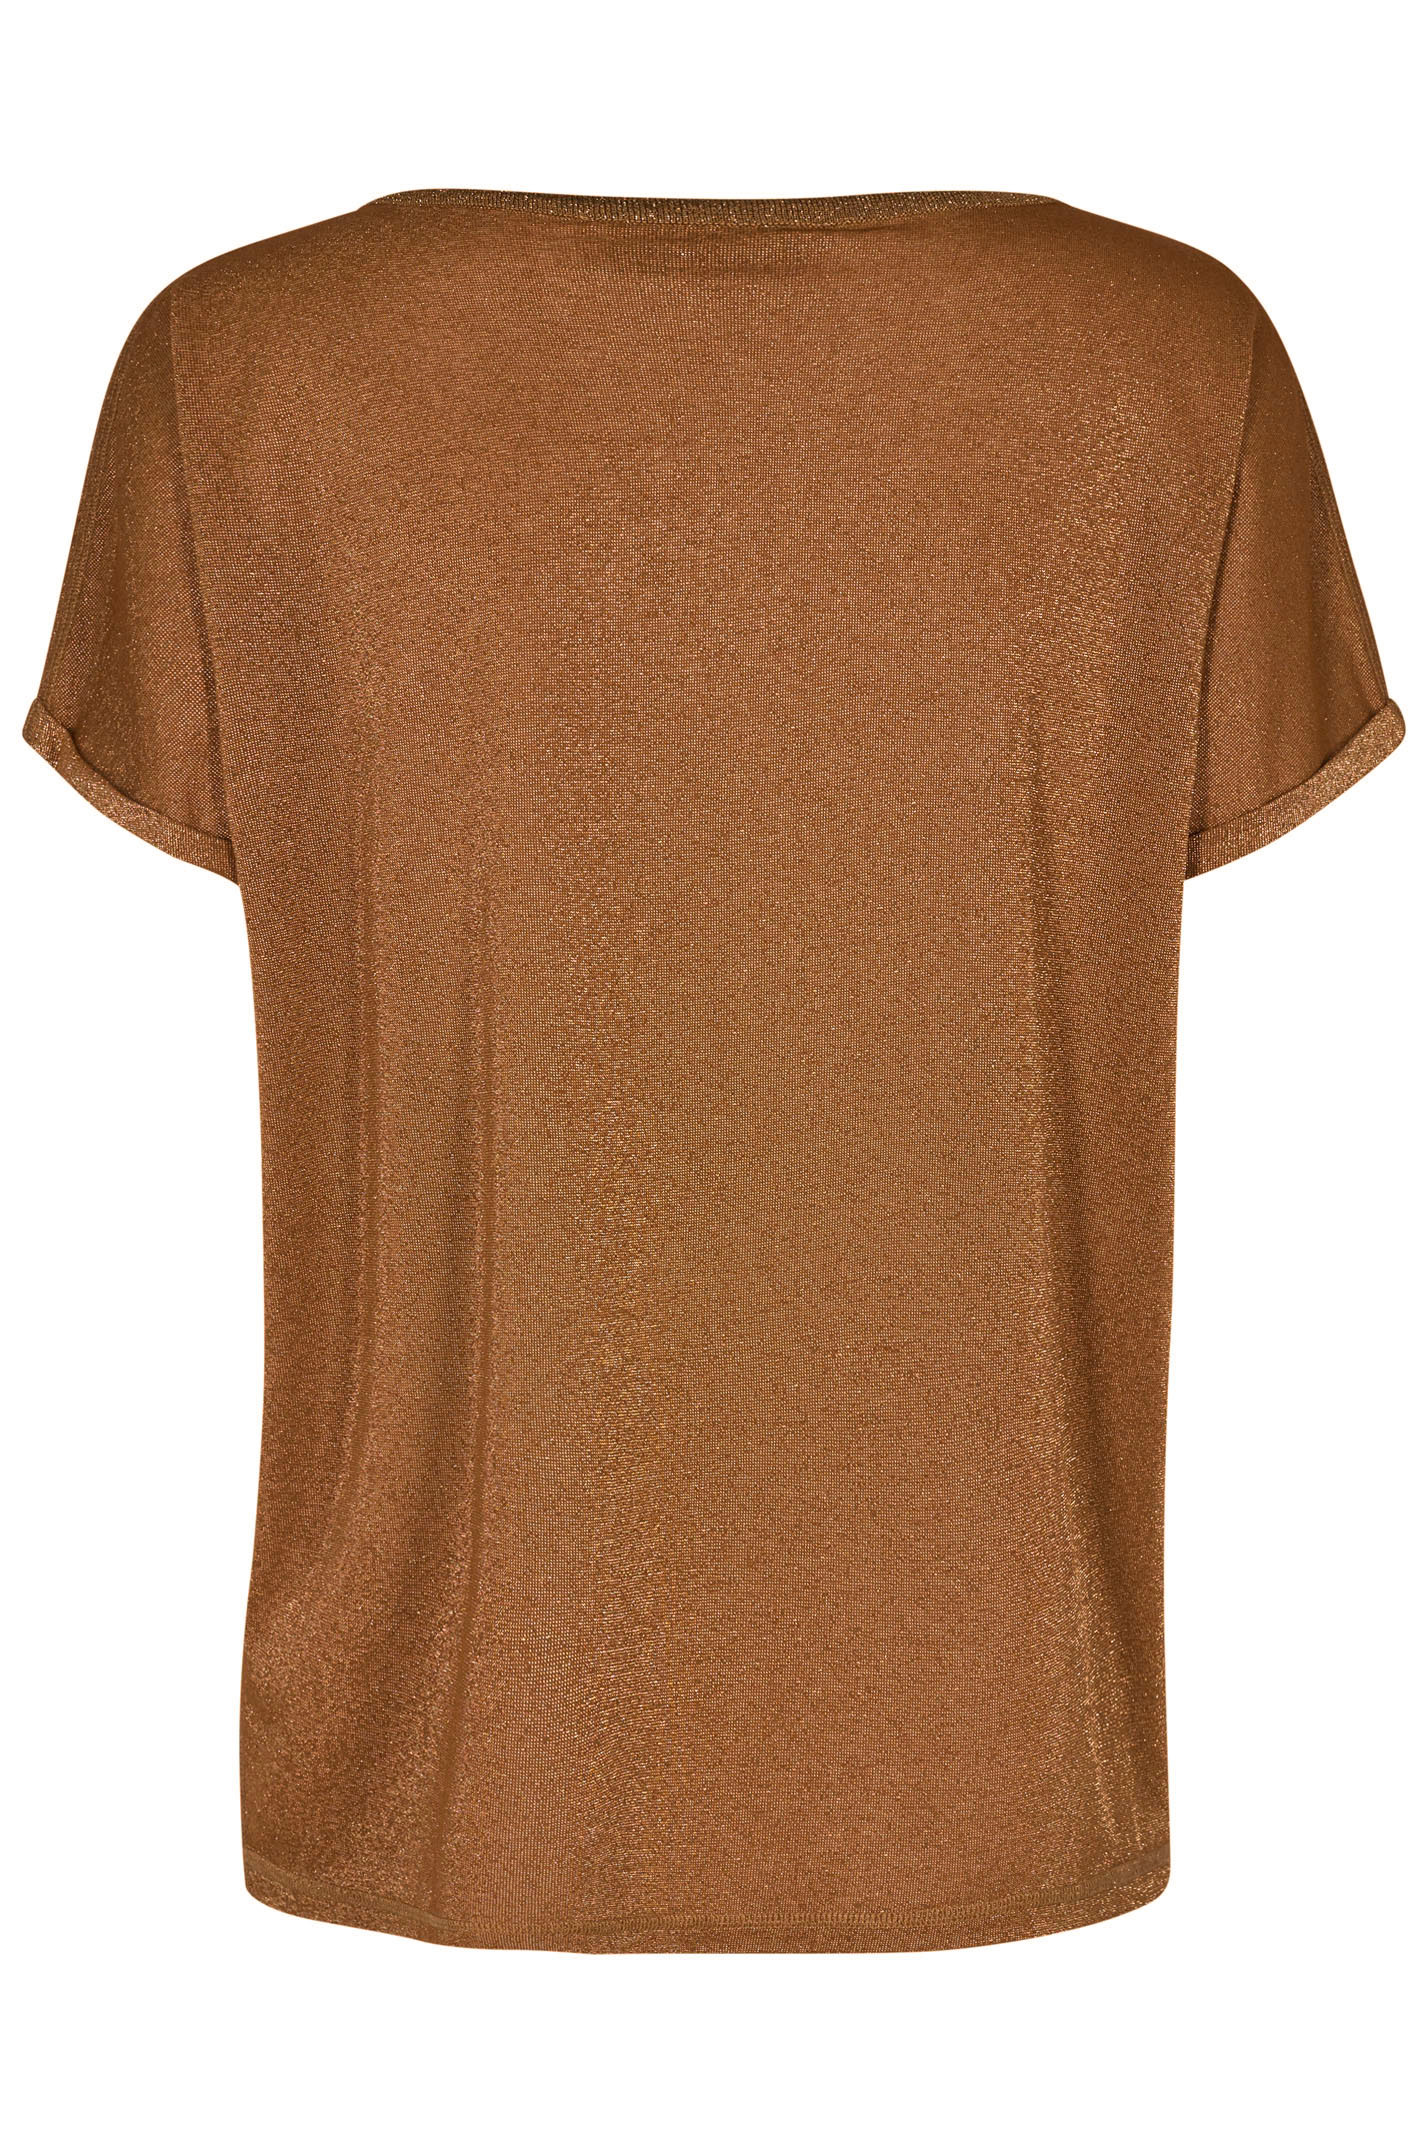 KAY 121500 TOPPE & T SHIRTS COPPER fra MOS MOSH.